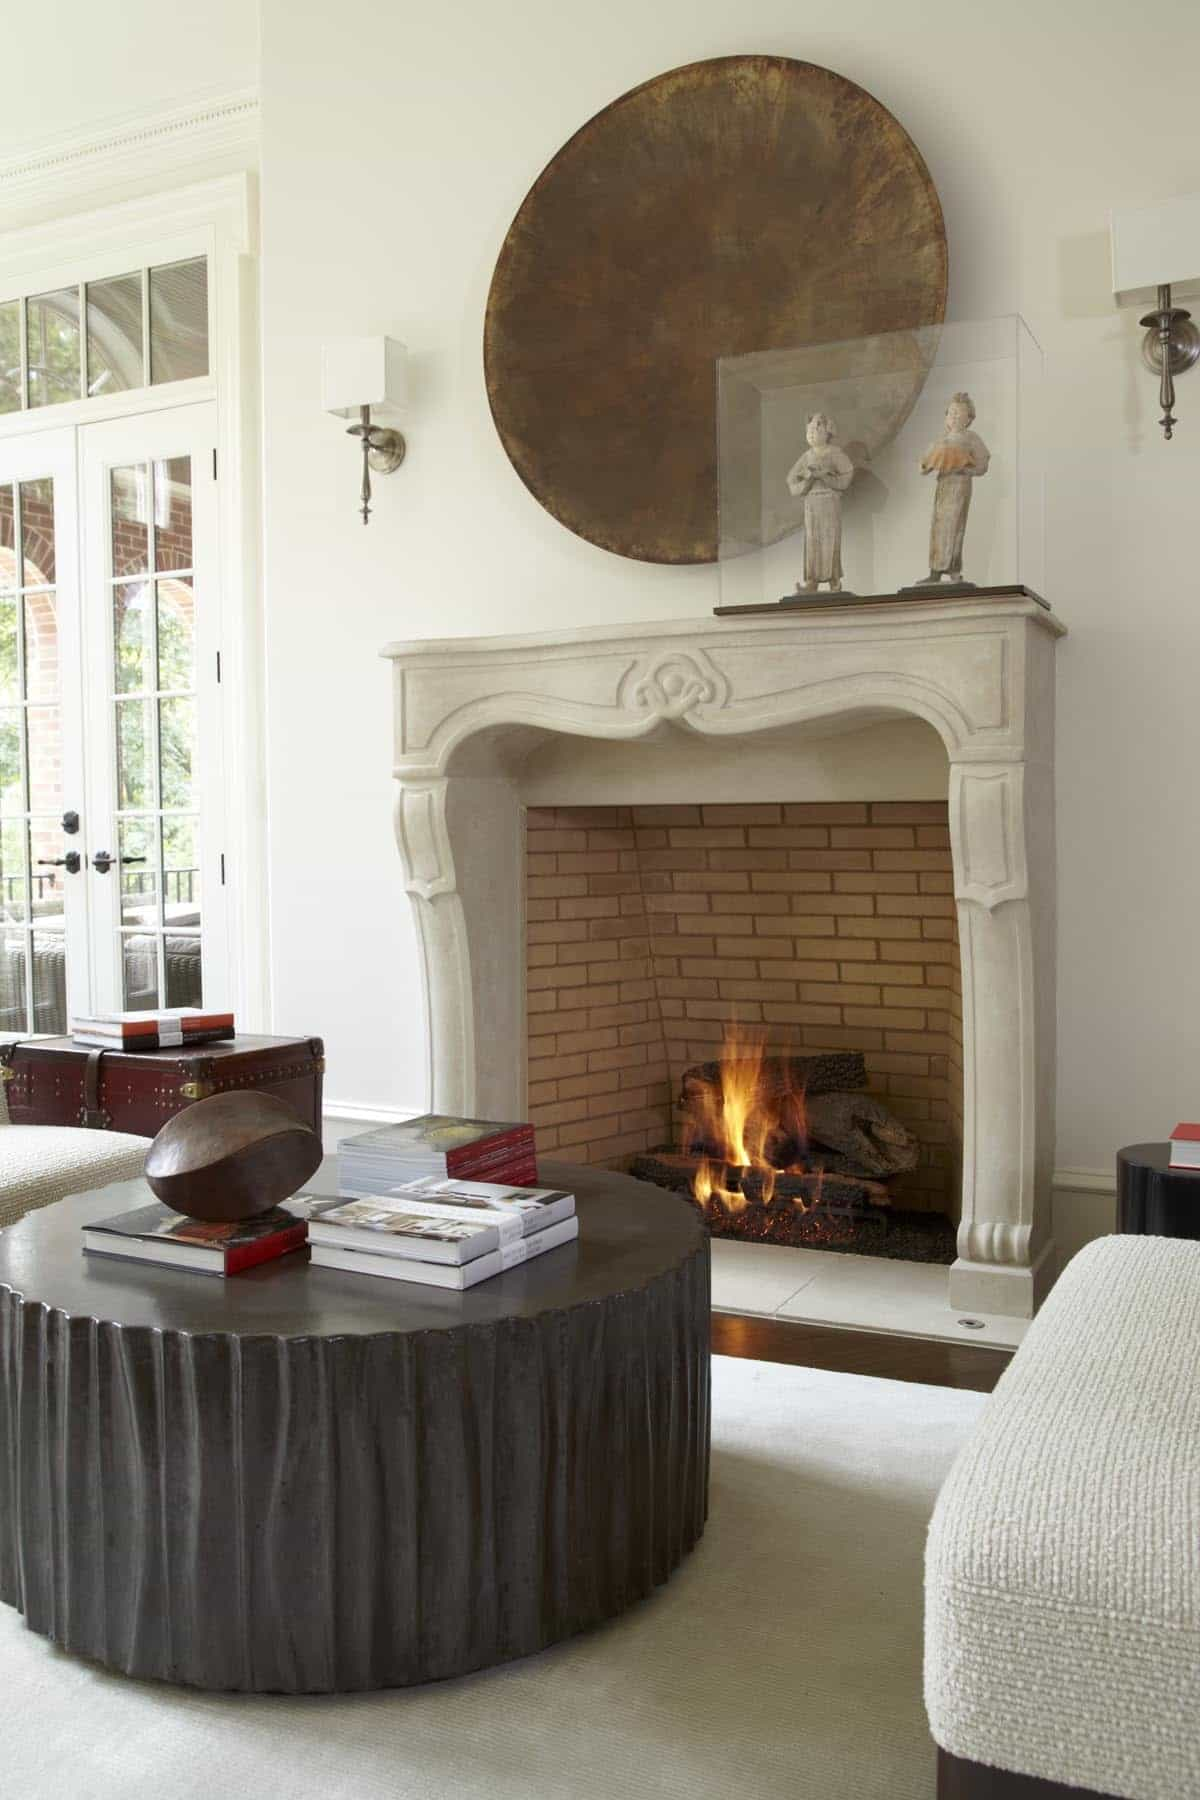 Featured Image of Asian Living Room With Decorative Fireplace Surround